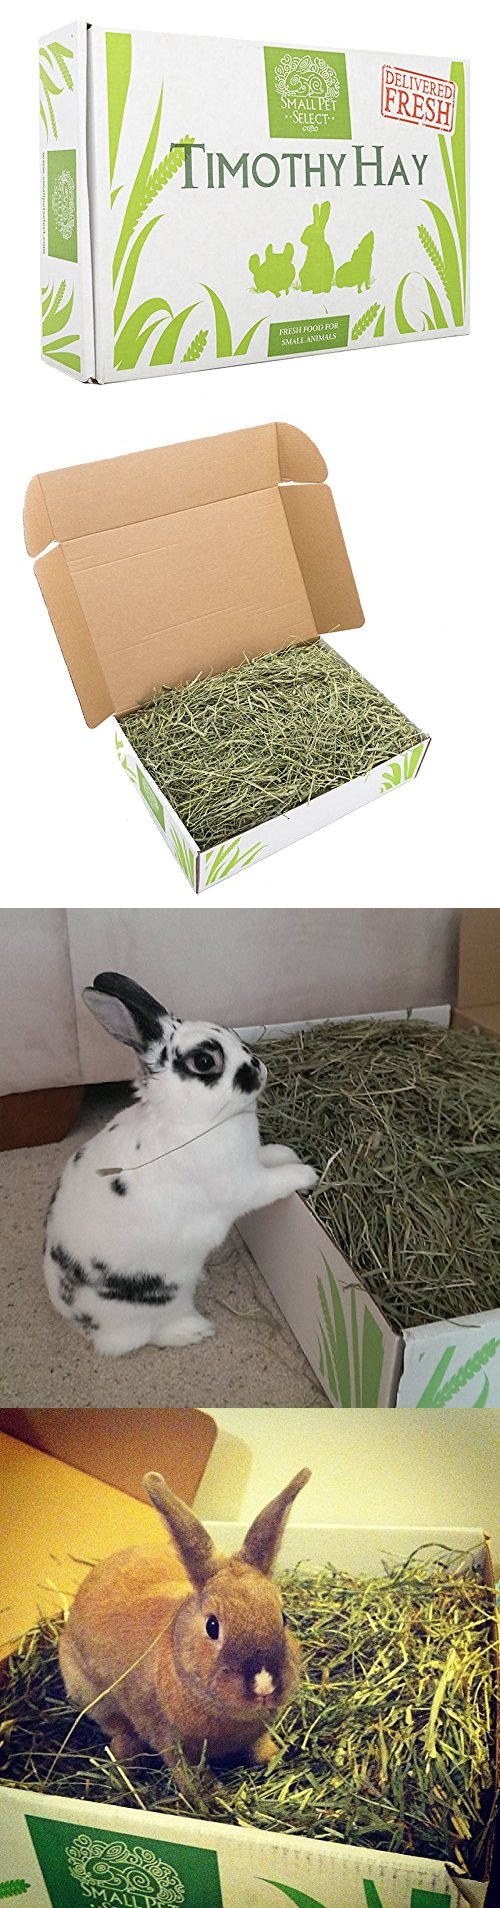 Food 100417: Small Pet Select 2Nd Cutting Timothy Hay Pet Food -> BUY IT NOW ONLY: $33.85 on eBay!